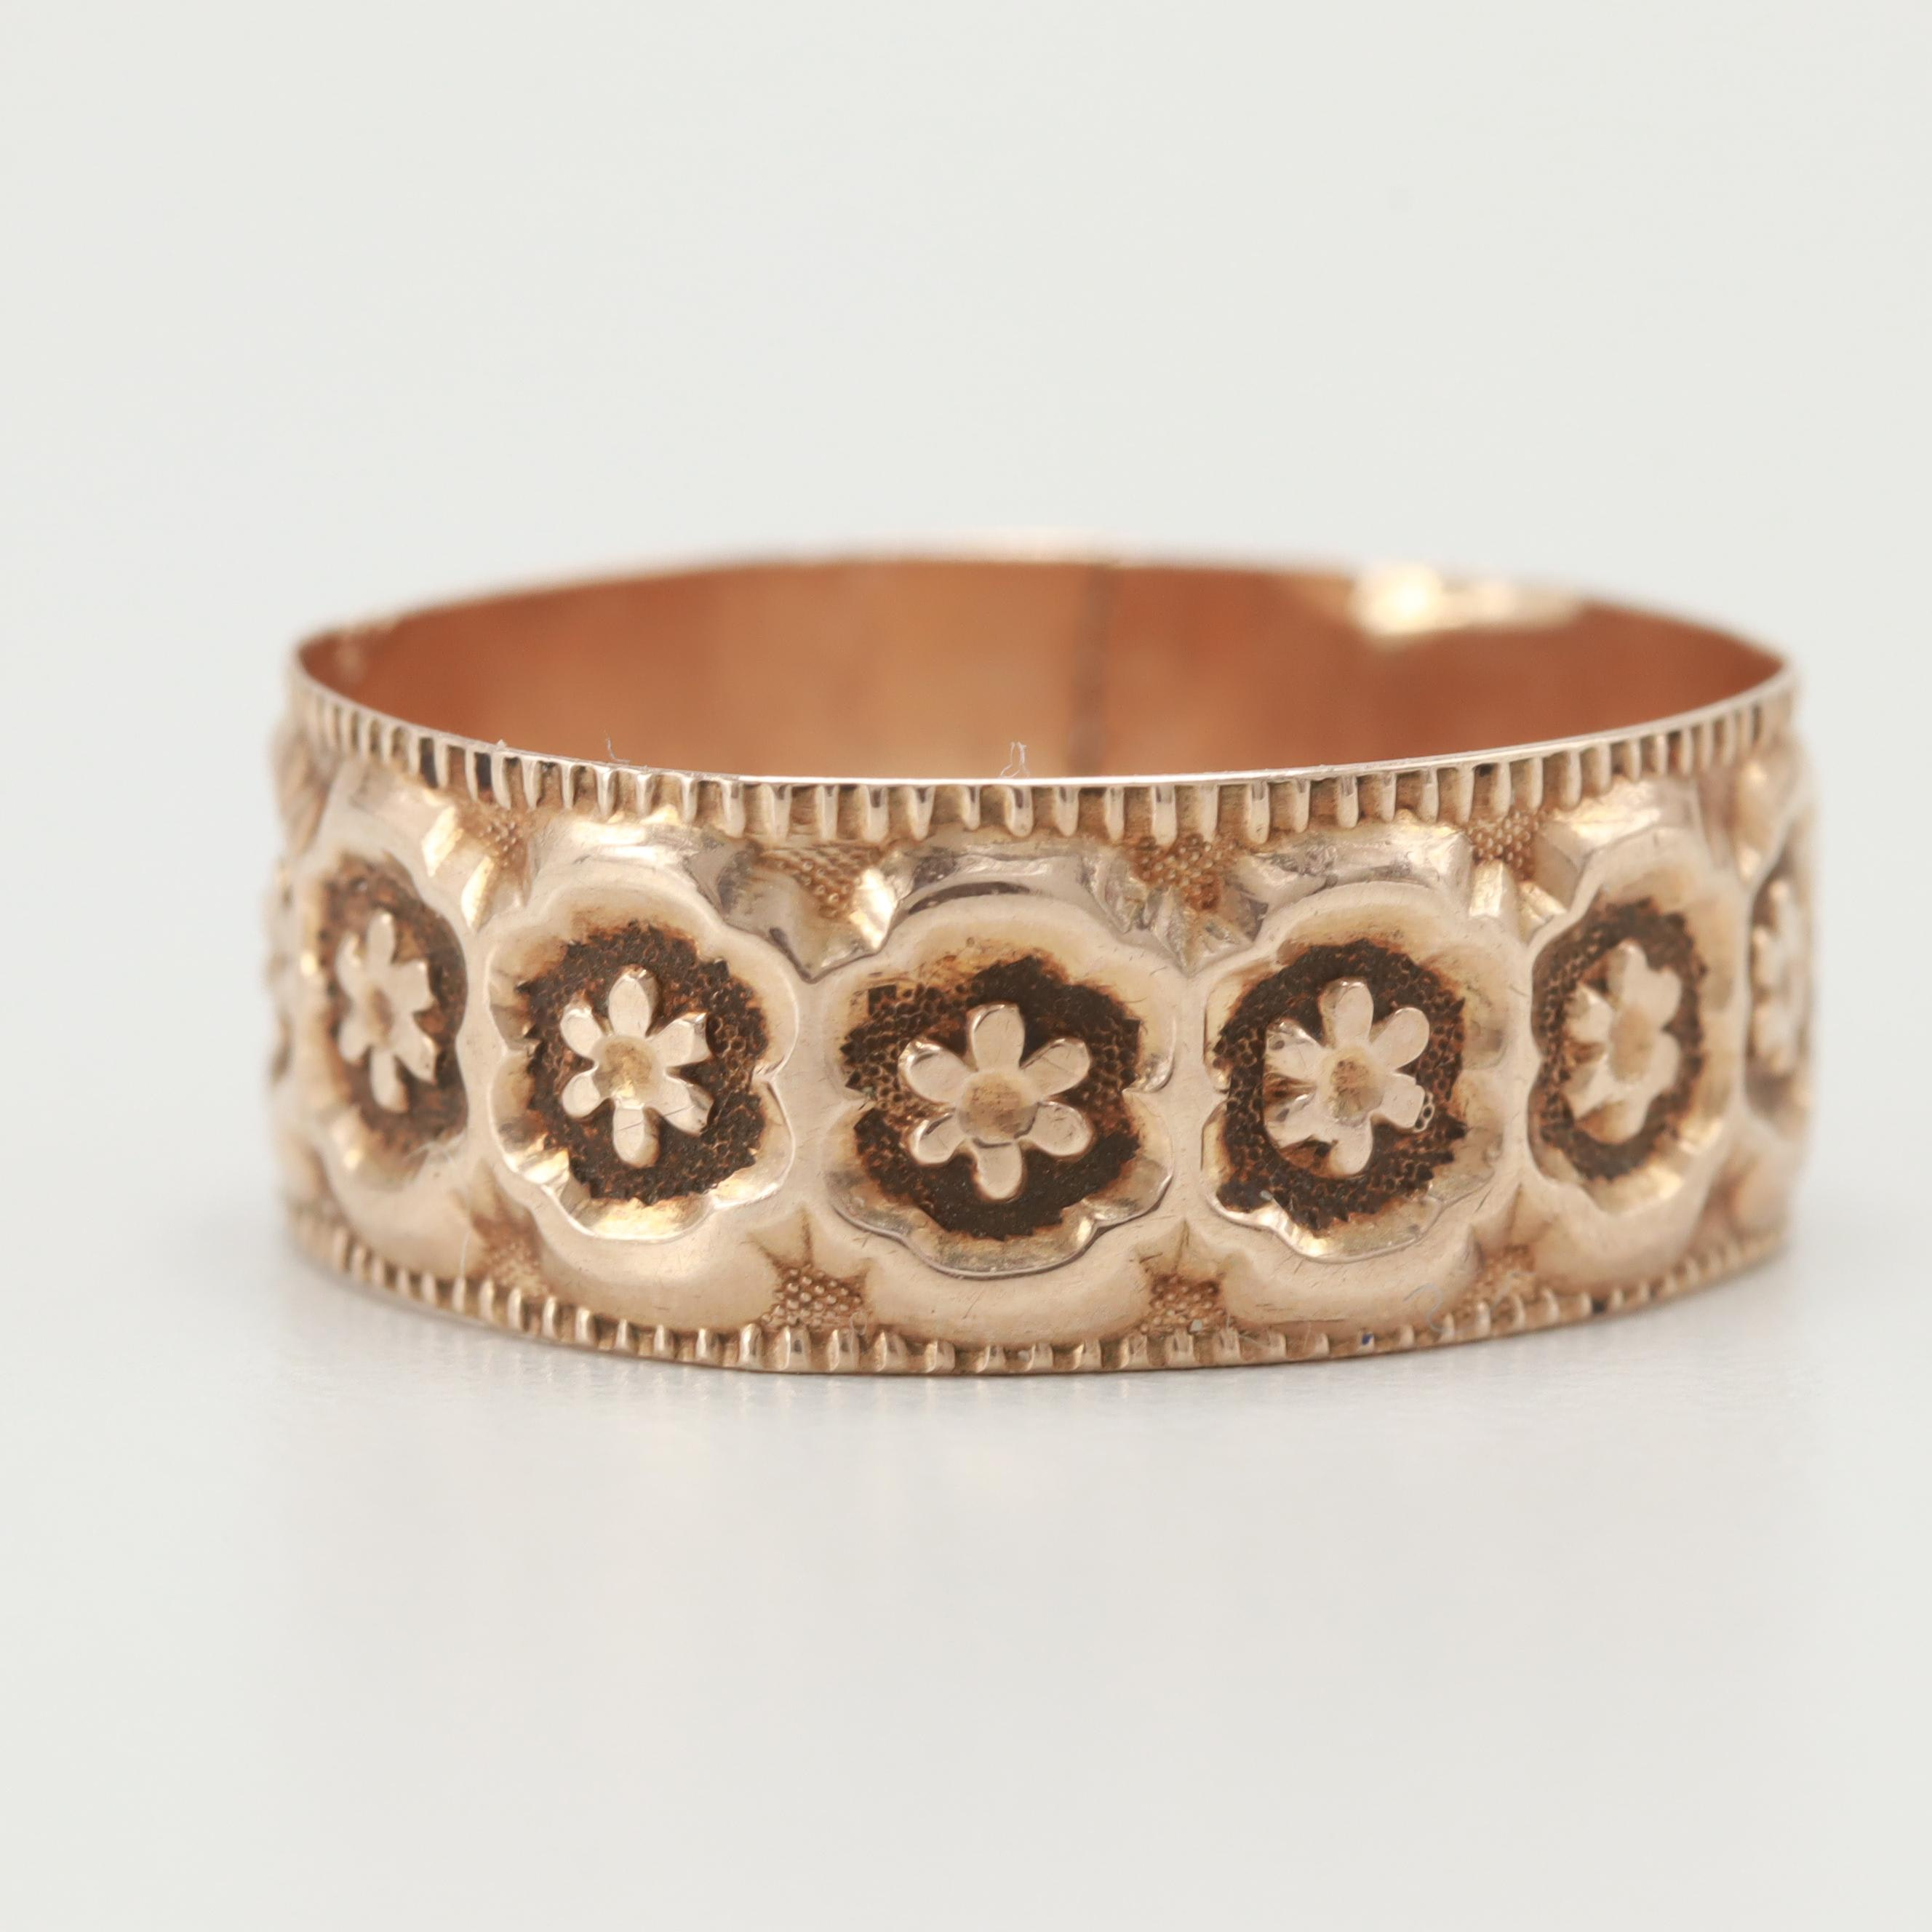 Victorian 10K Yellow Gold Stamped Floral Motif Ring